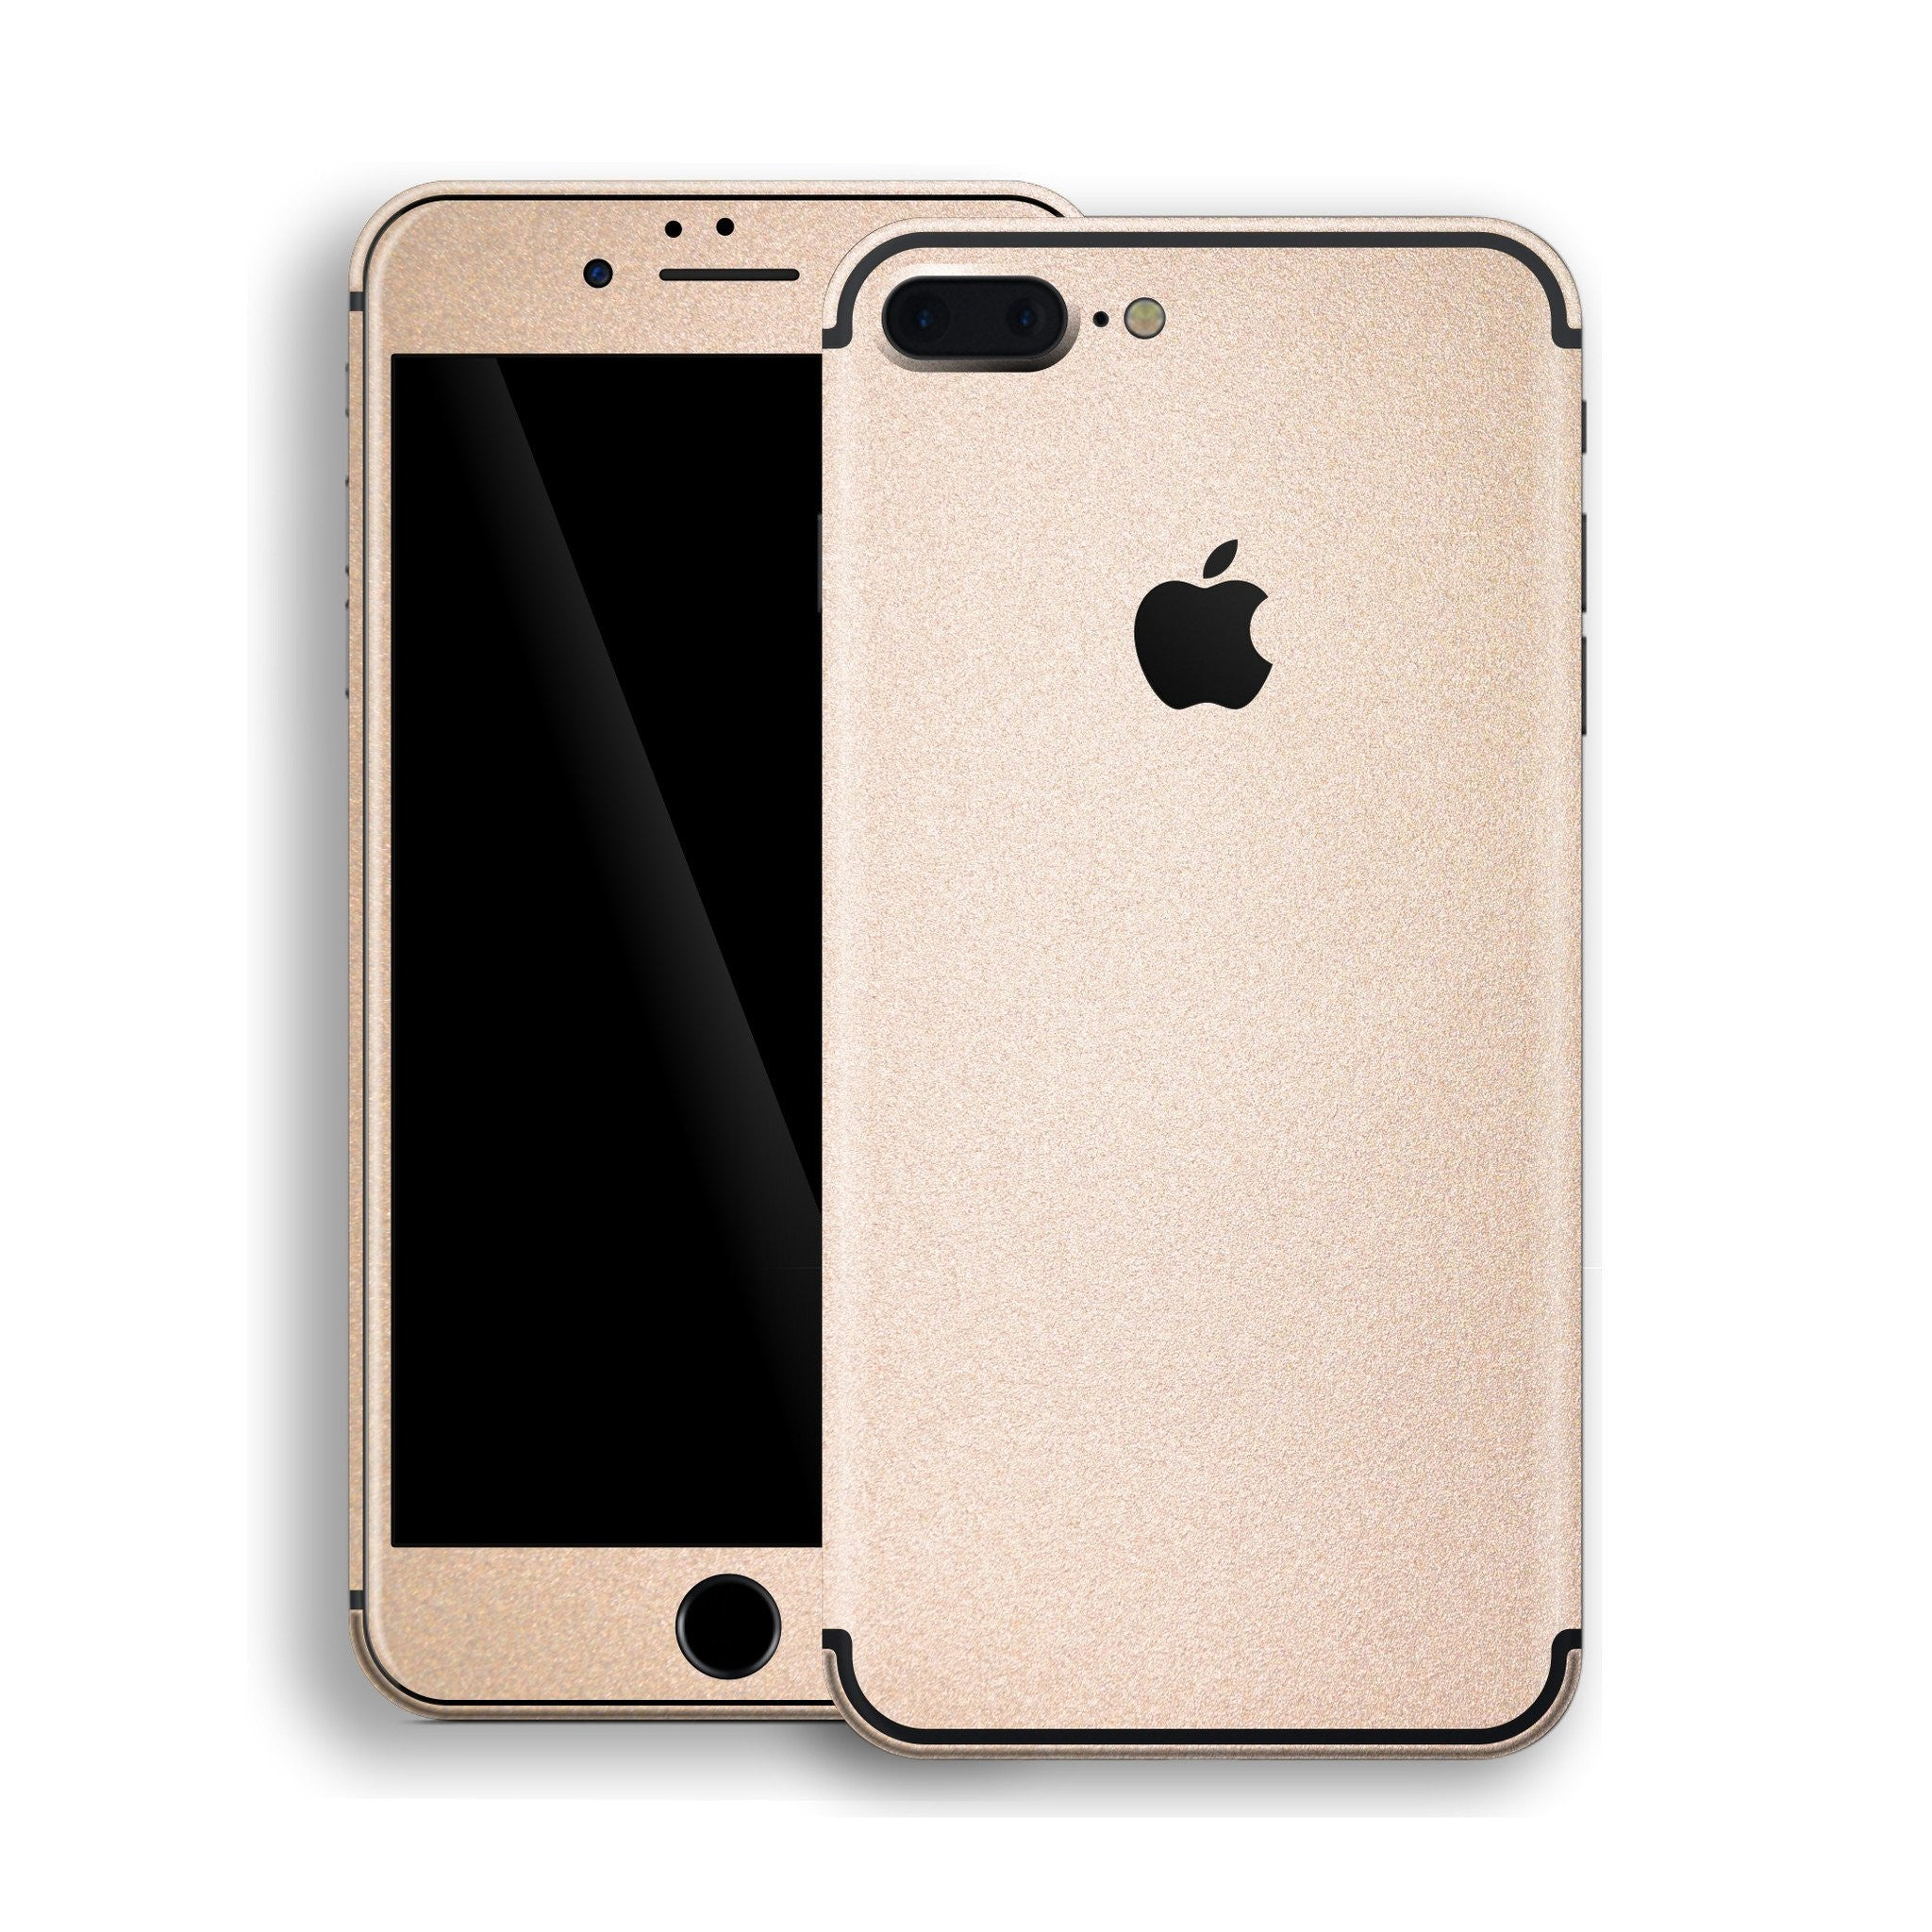 Iphone 7 Plus Luxuria Rose Gold Skin Wrap Decal Easyskinz